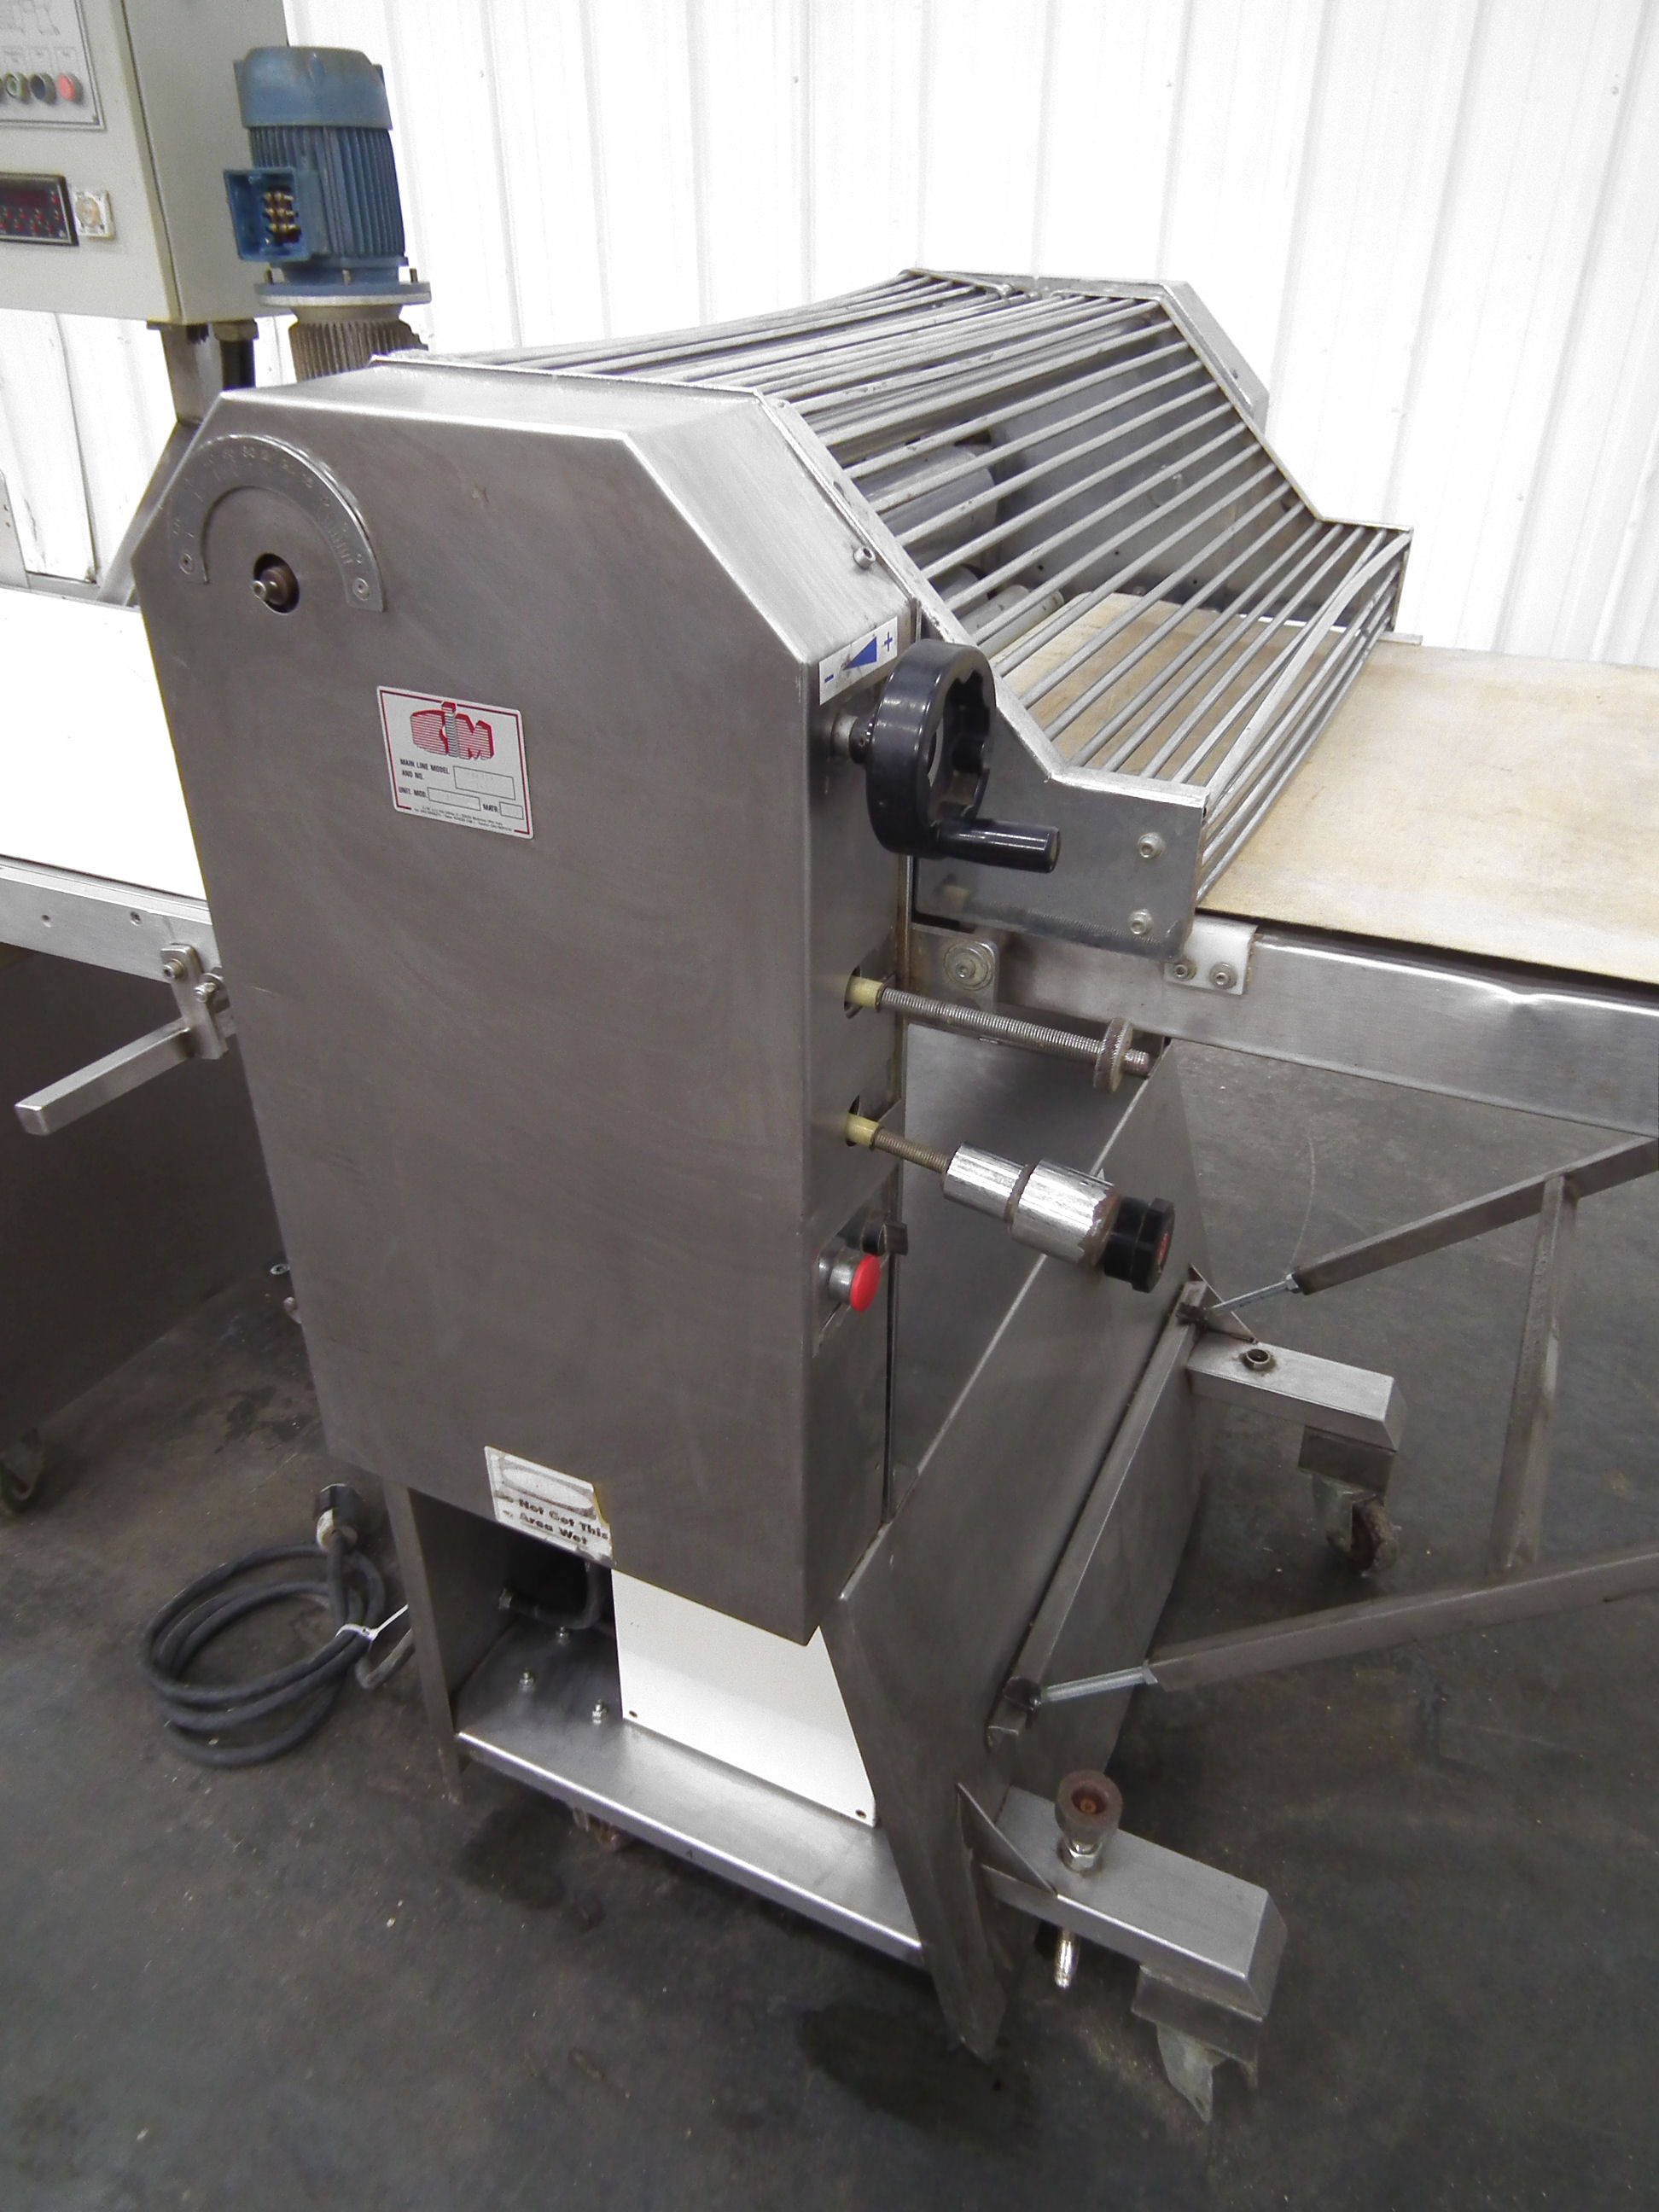 CIM Maxima 165 Dough Sheeter Guillotine 28 In Wide A7948 - Image 9 of 11